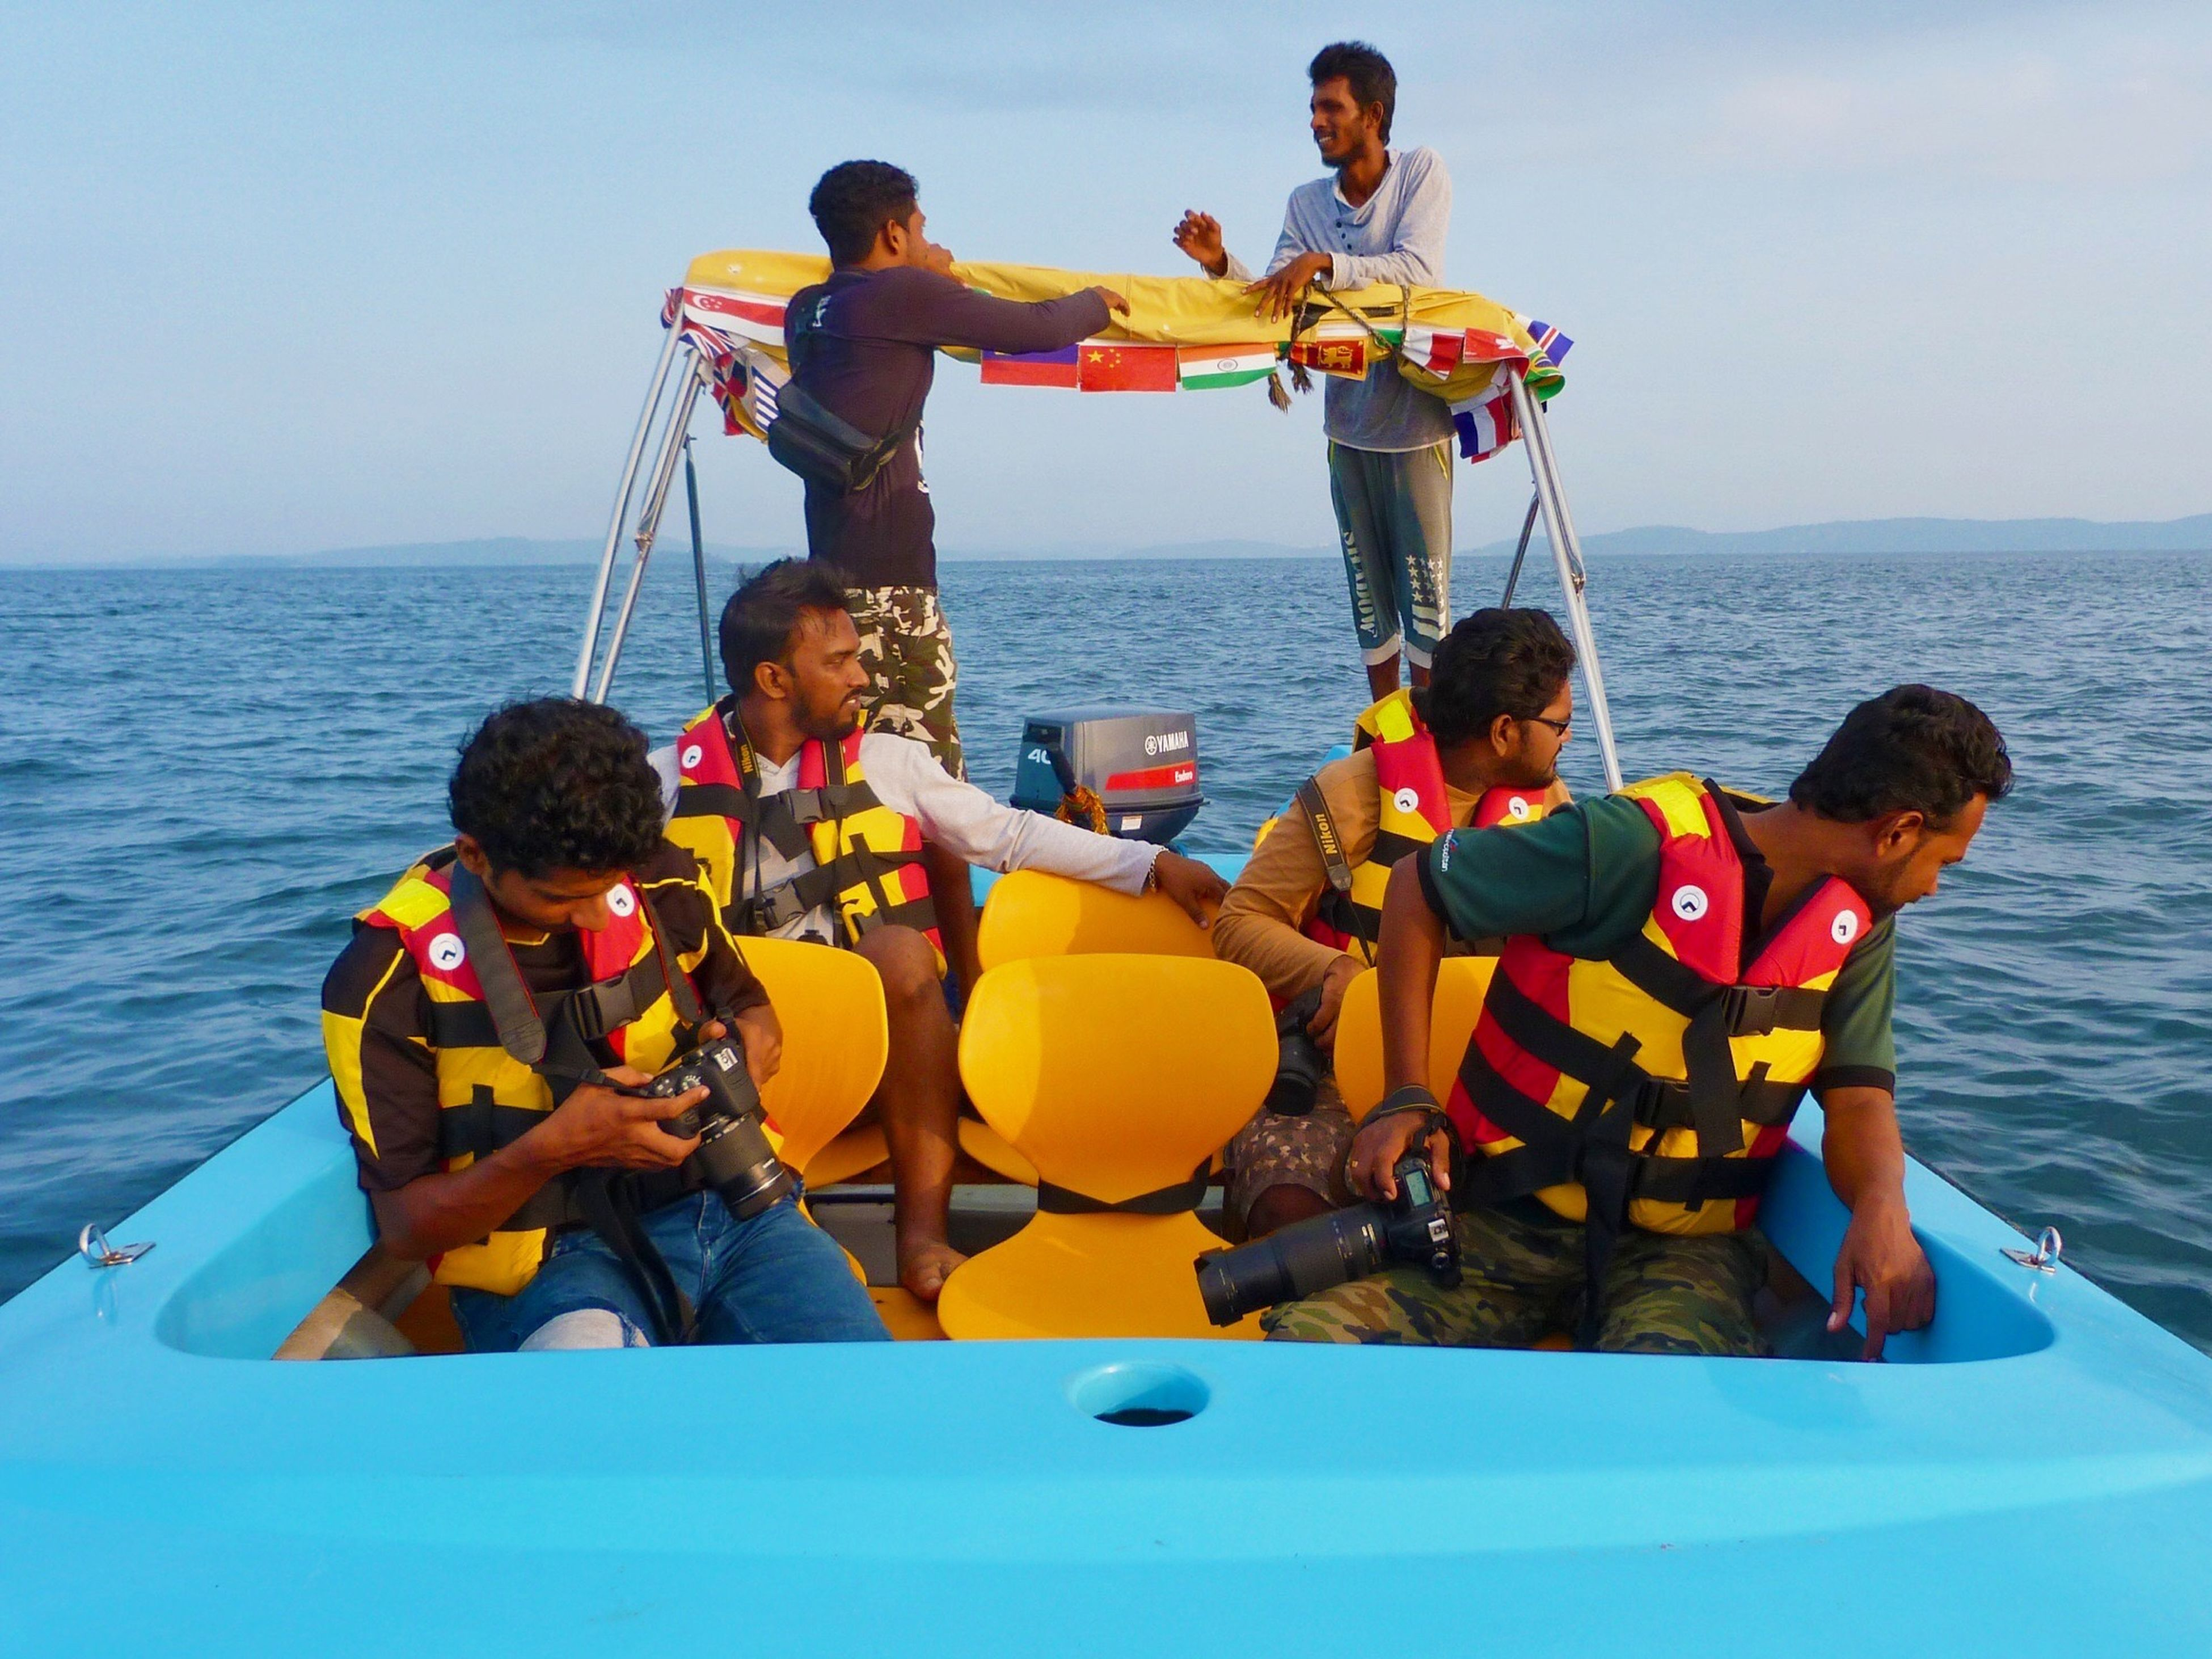 sea, water, leisure activity, real people, nautical vessel, outdoors, men, sky, day, horizon over water, sitting, beach, togetherness, boys, childhood, standing, women, nature, friendship